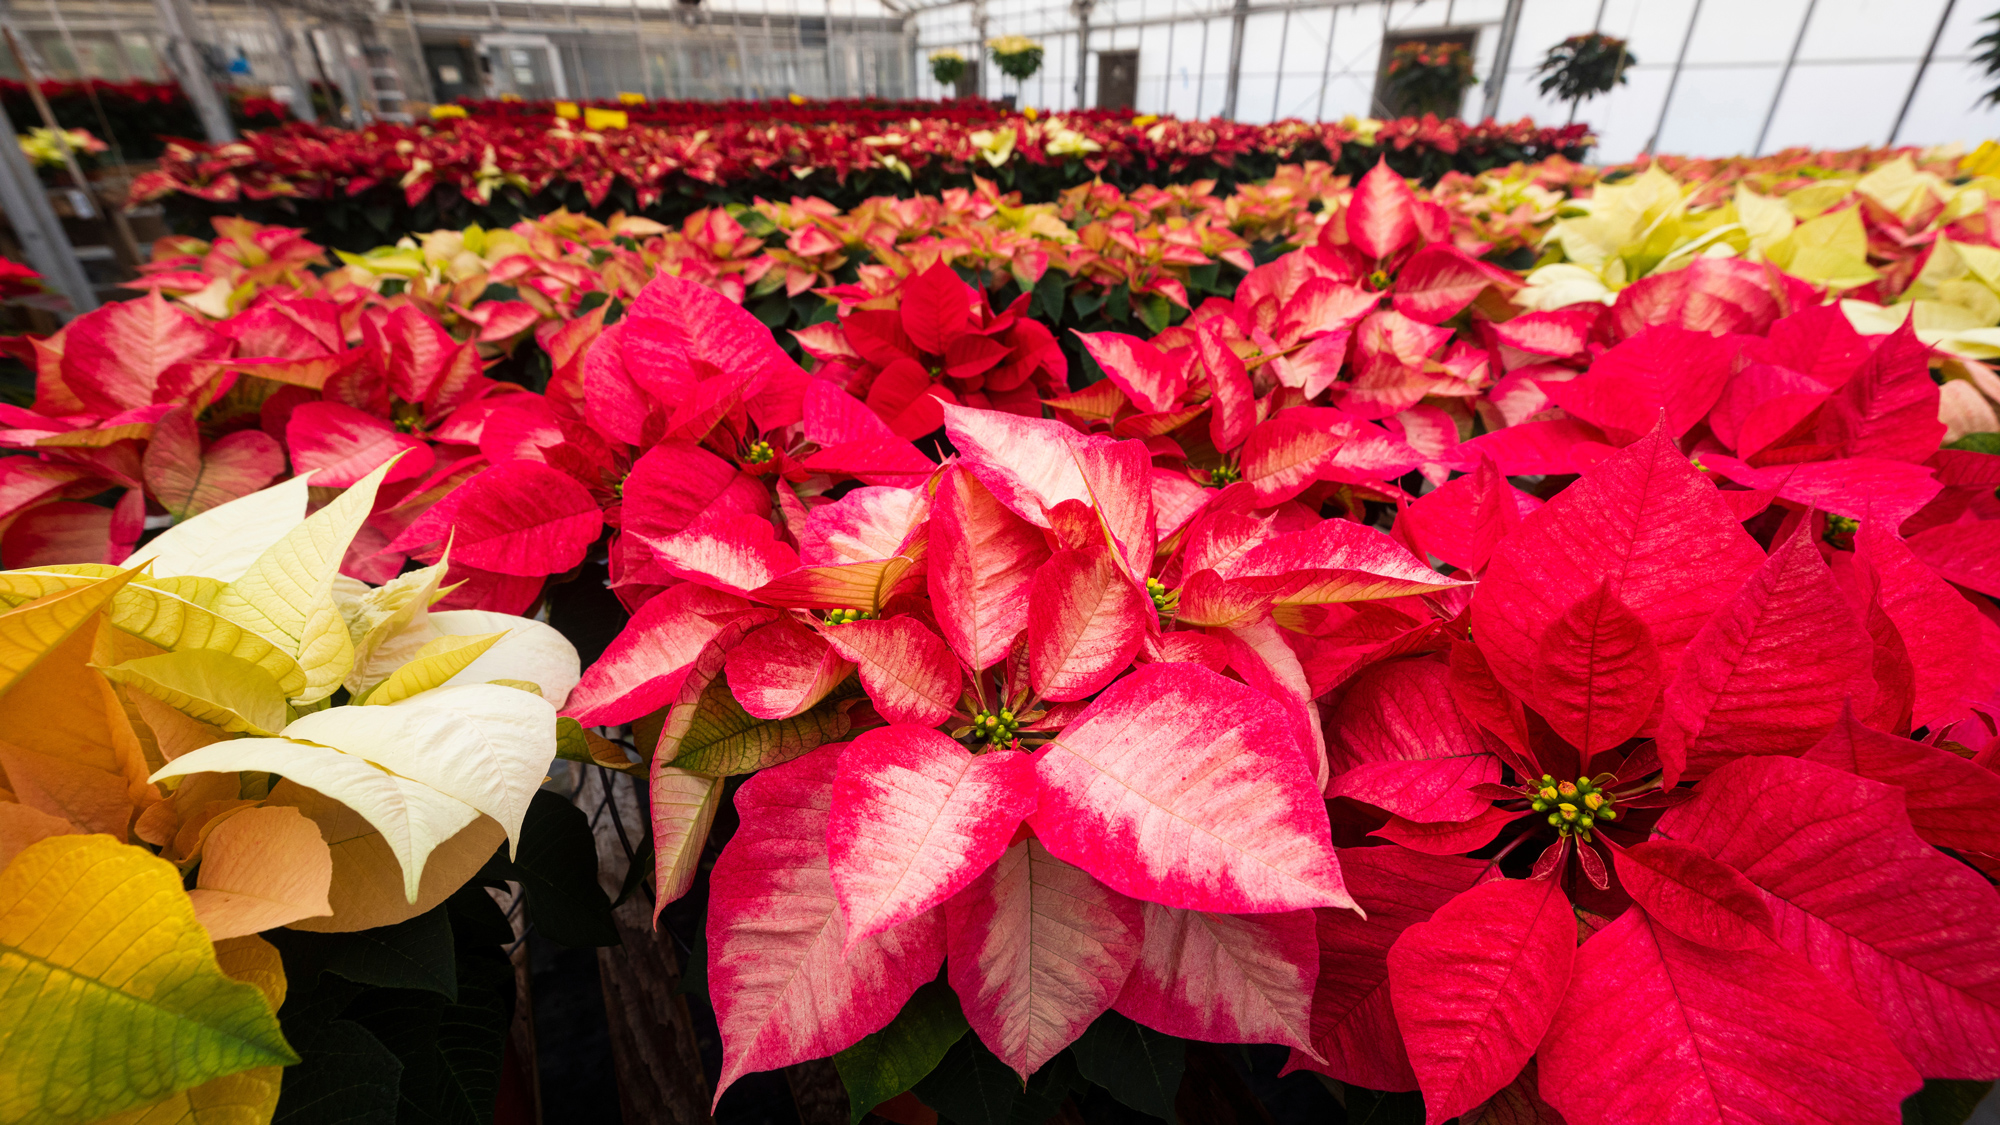 Pink, yellow and red poinsettias in a greenhouse